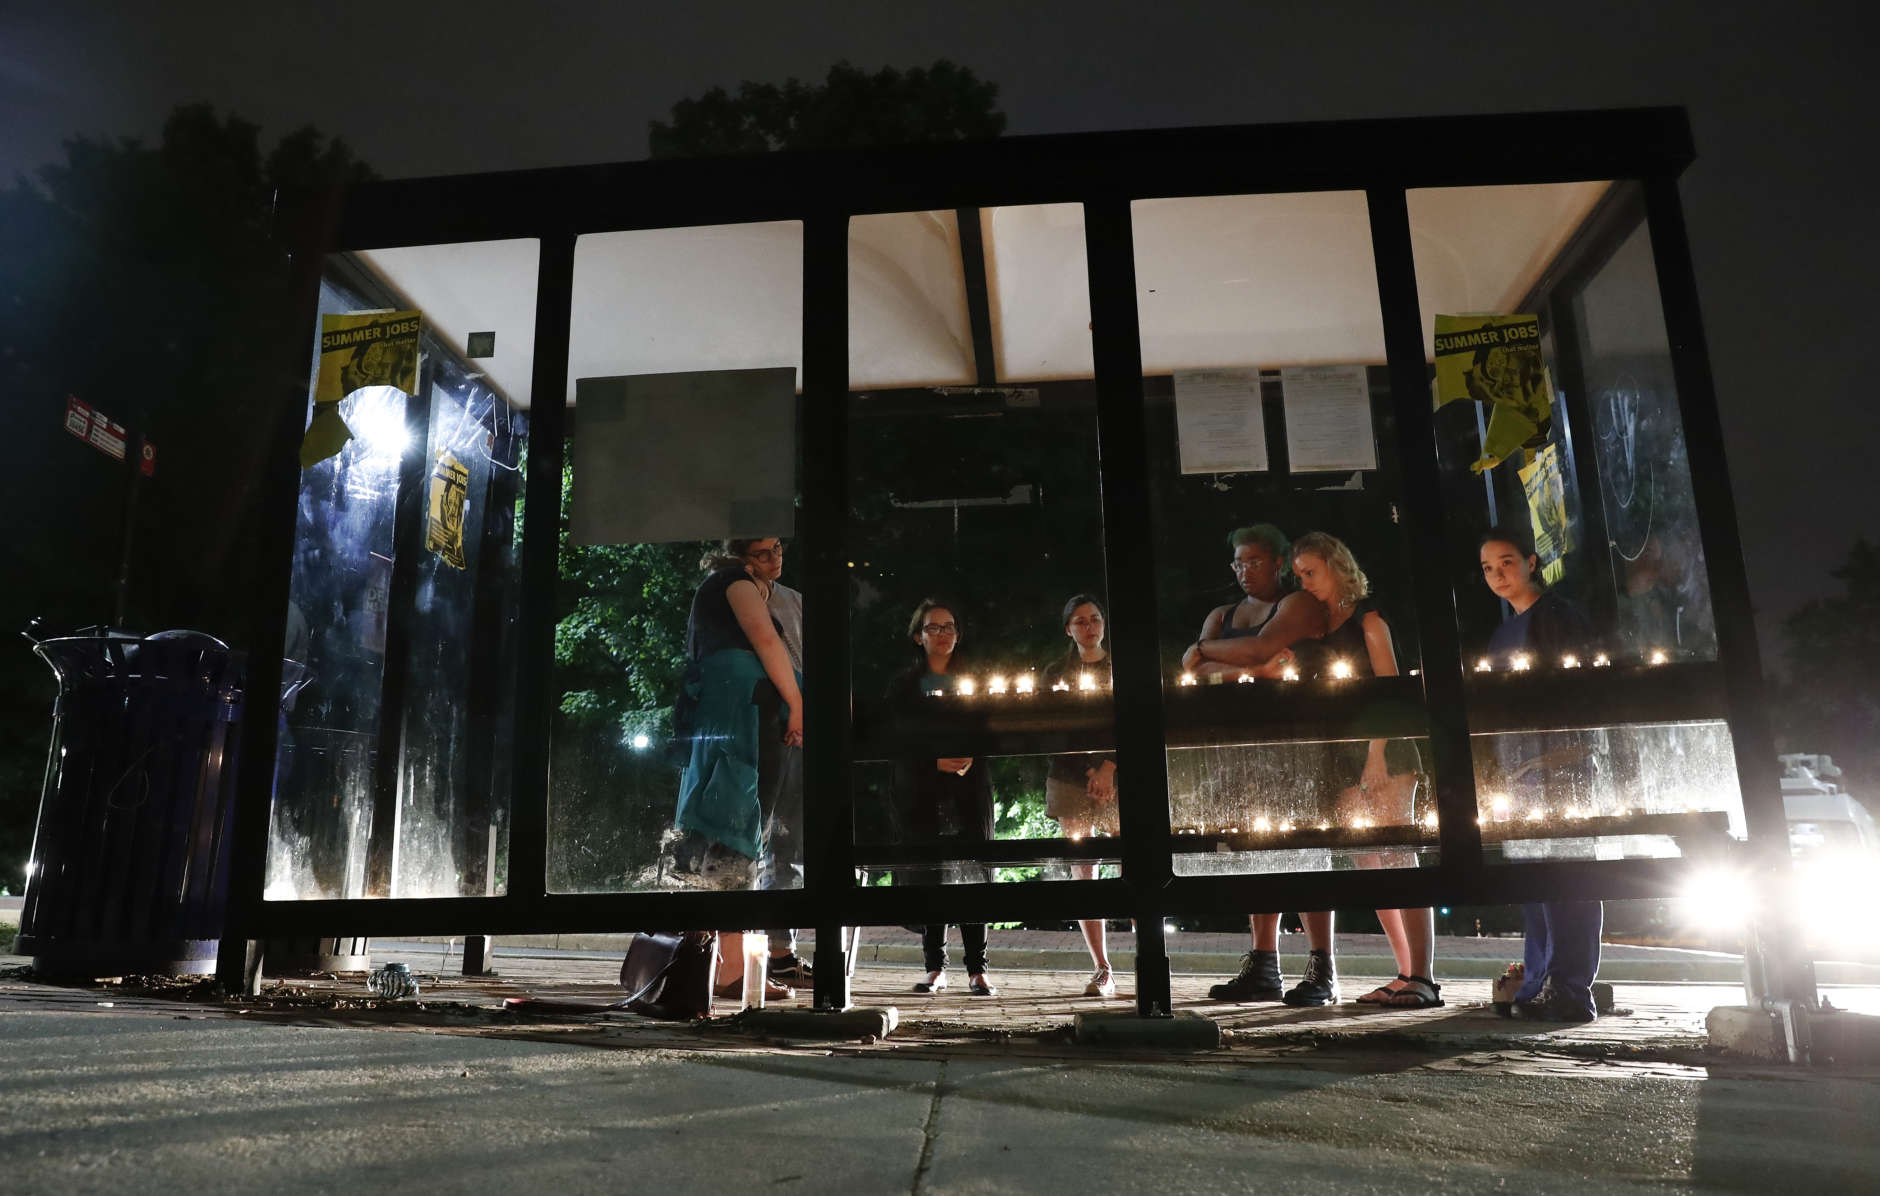 People gathered at the bus stop on University of Maryland campus where Richard Collins III was stabbed. (AP Photo/Carolyn Kaster)